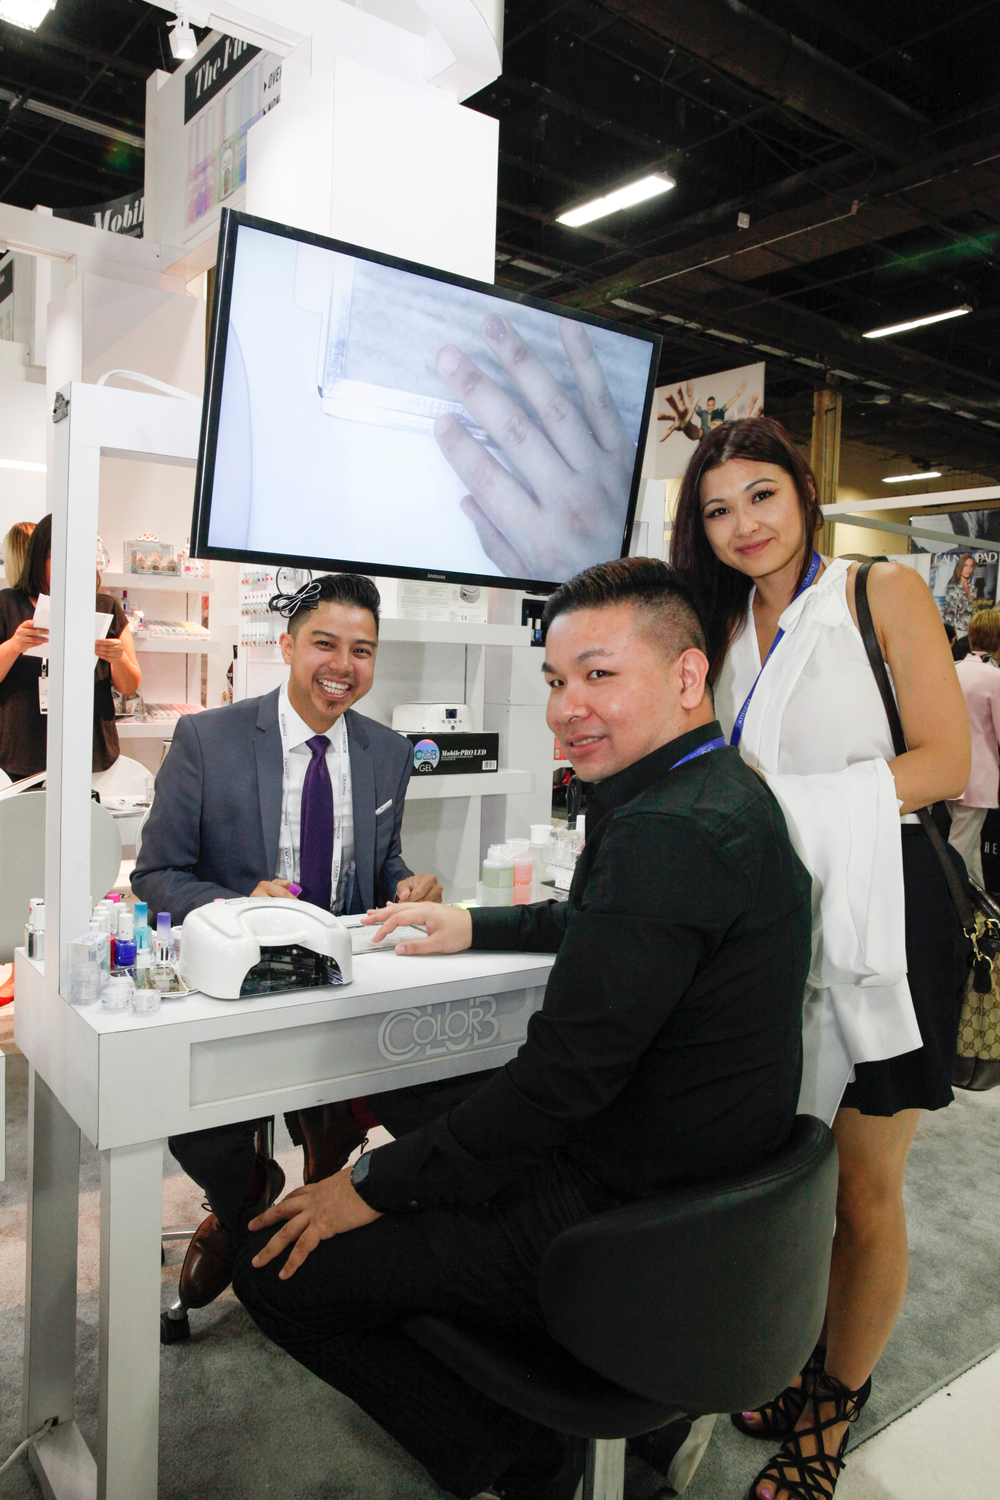 <p>Color Club's Robert Nguyen demos some of the company's newest products for Tuan Le and Jem Huynh from Jen Beauty Supply in Surrey, B.C.</p>